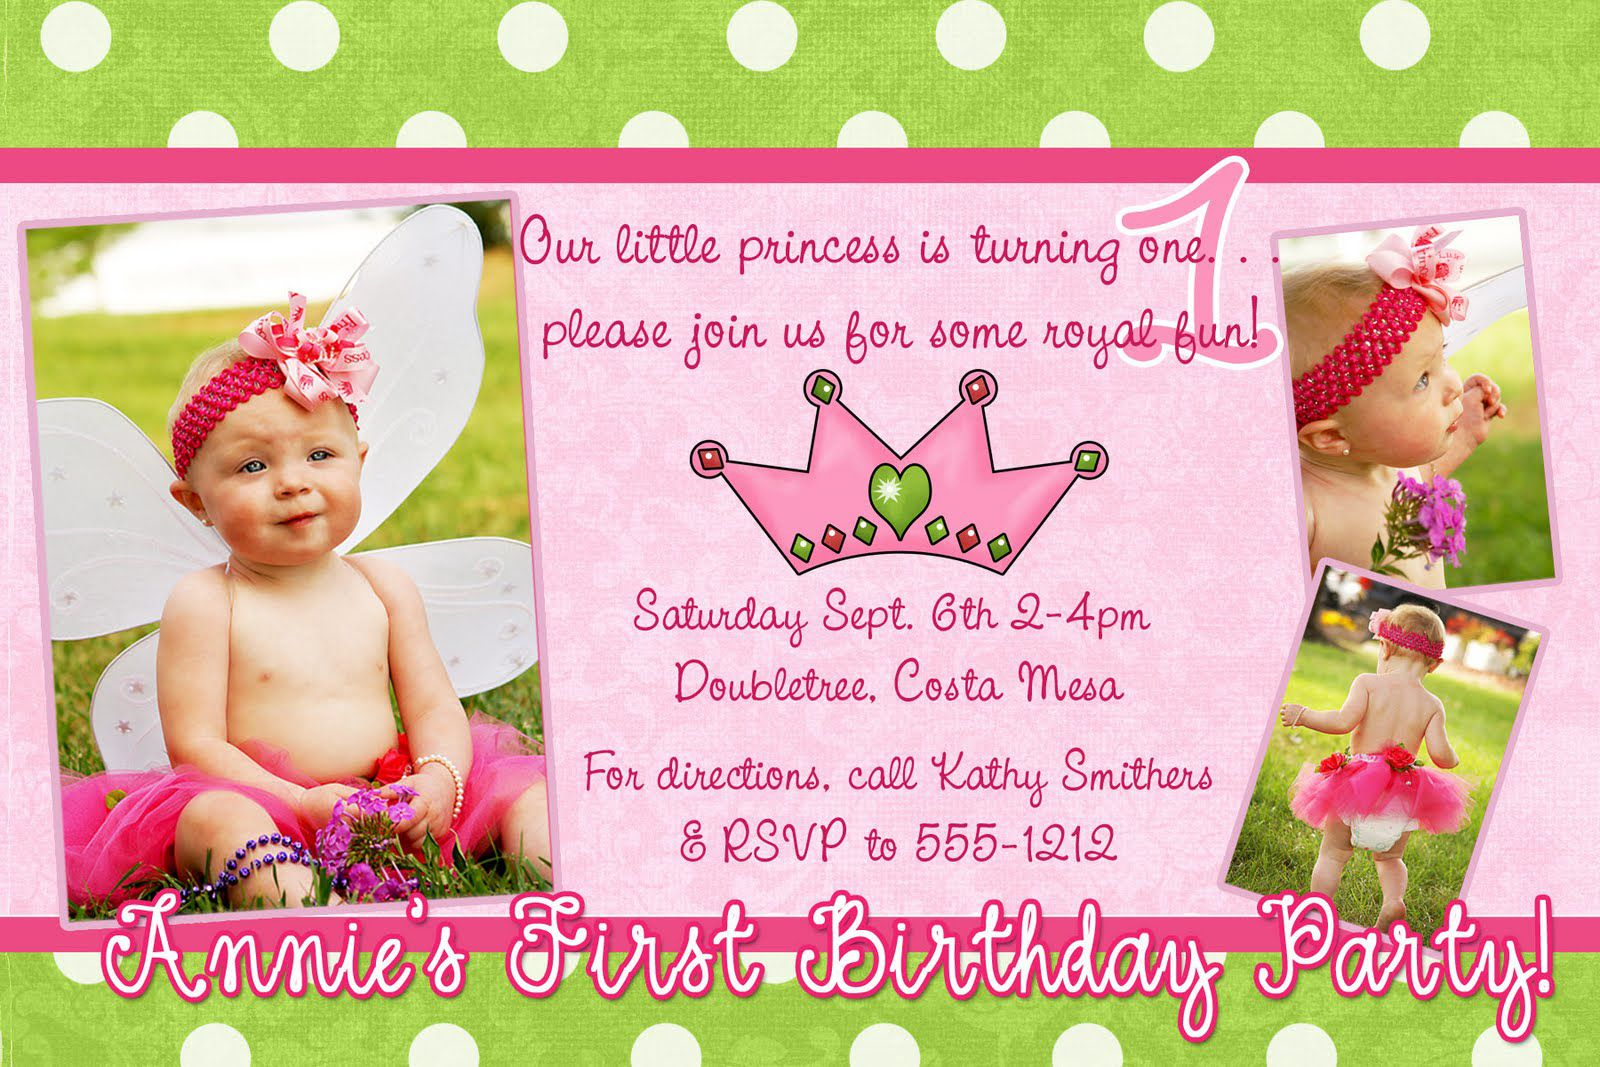 21 kids birthday invitation wording that we can make sample girl birthday invitation wording stopboris